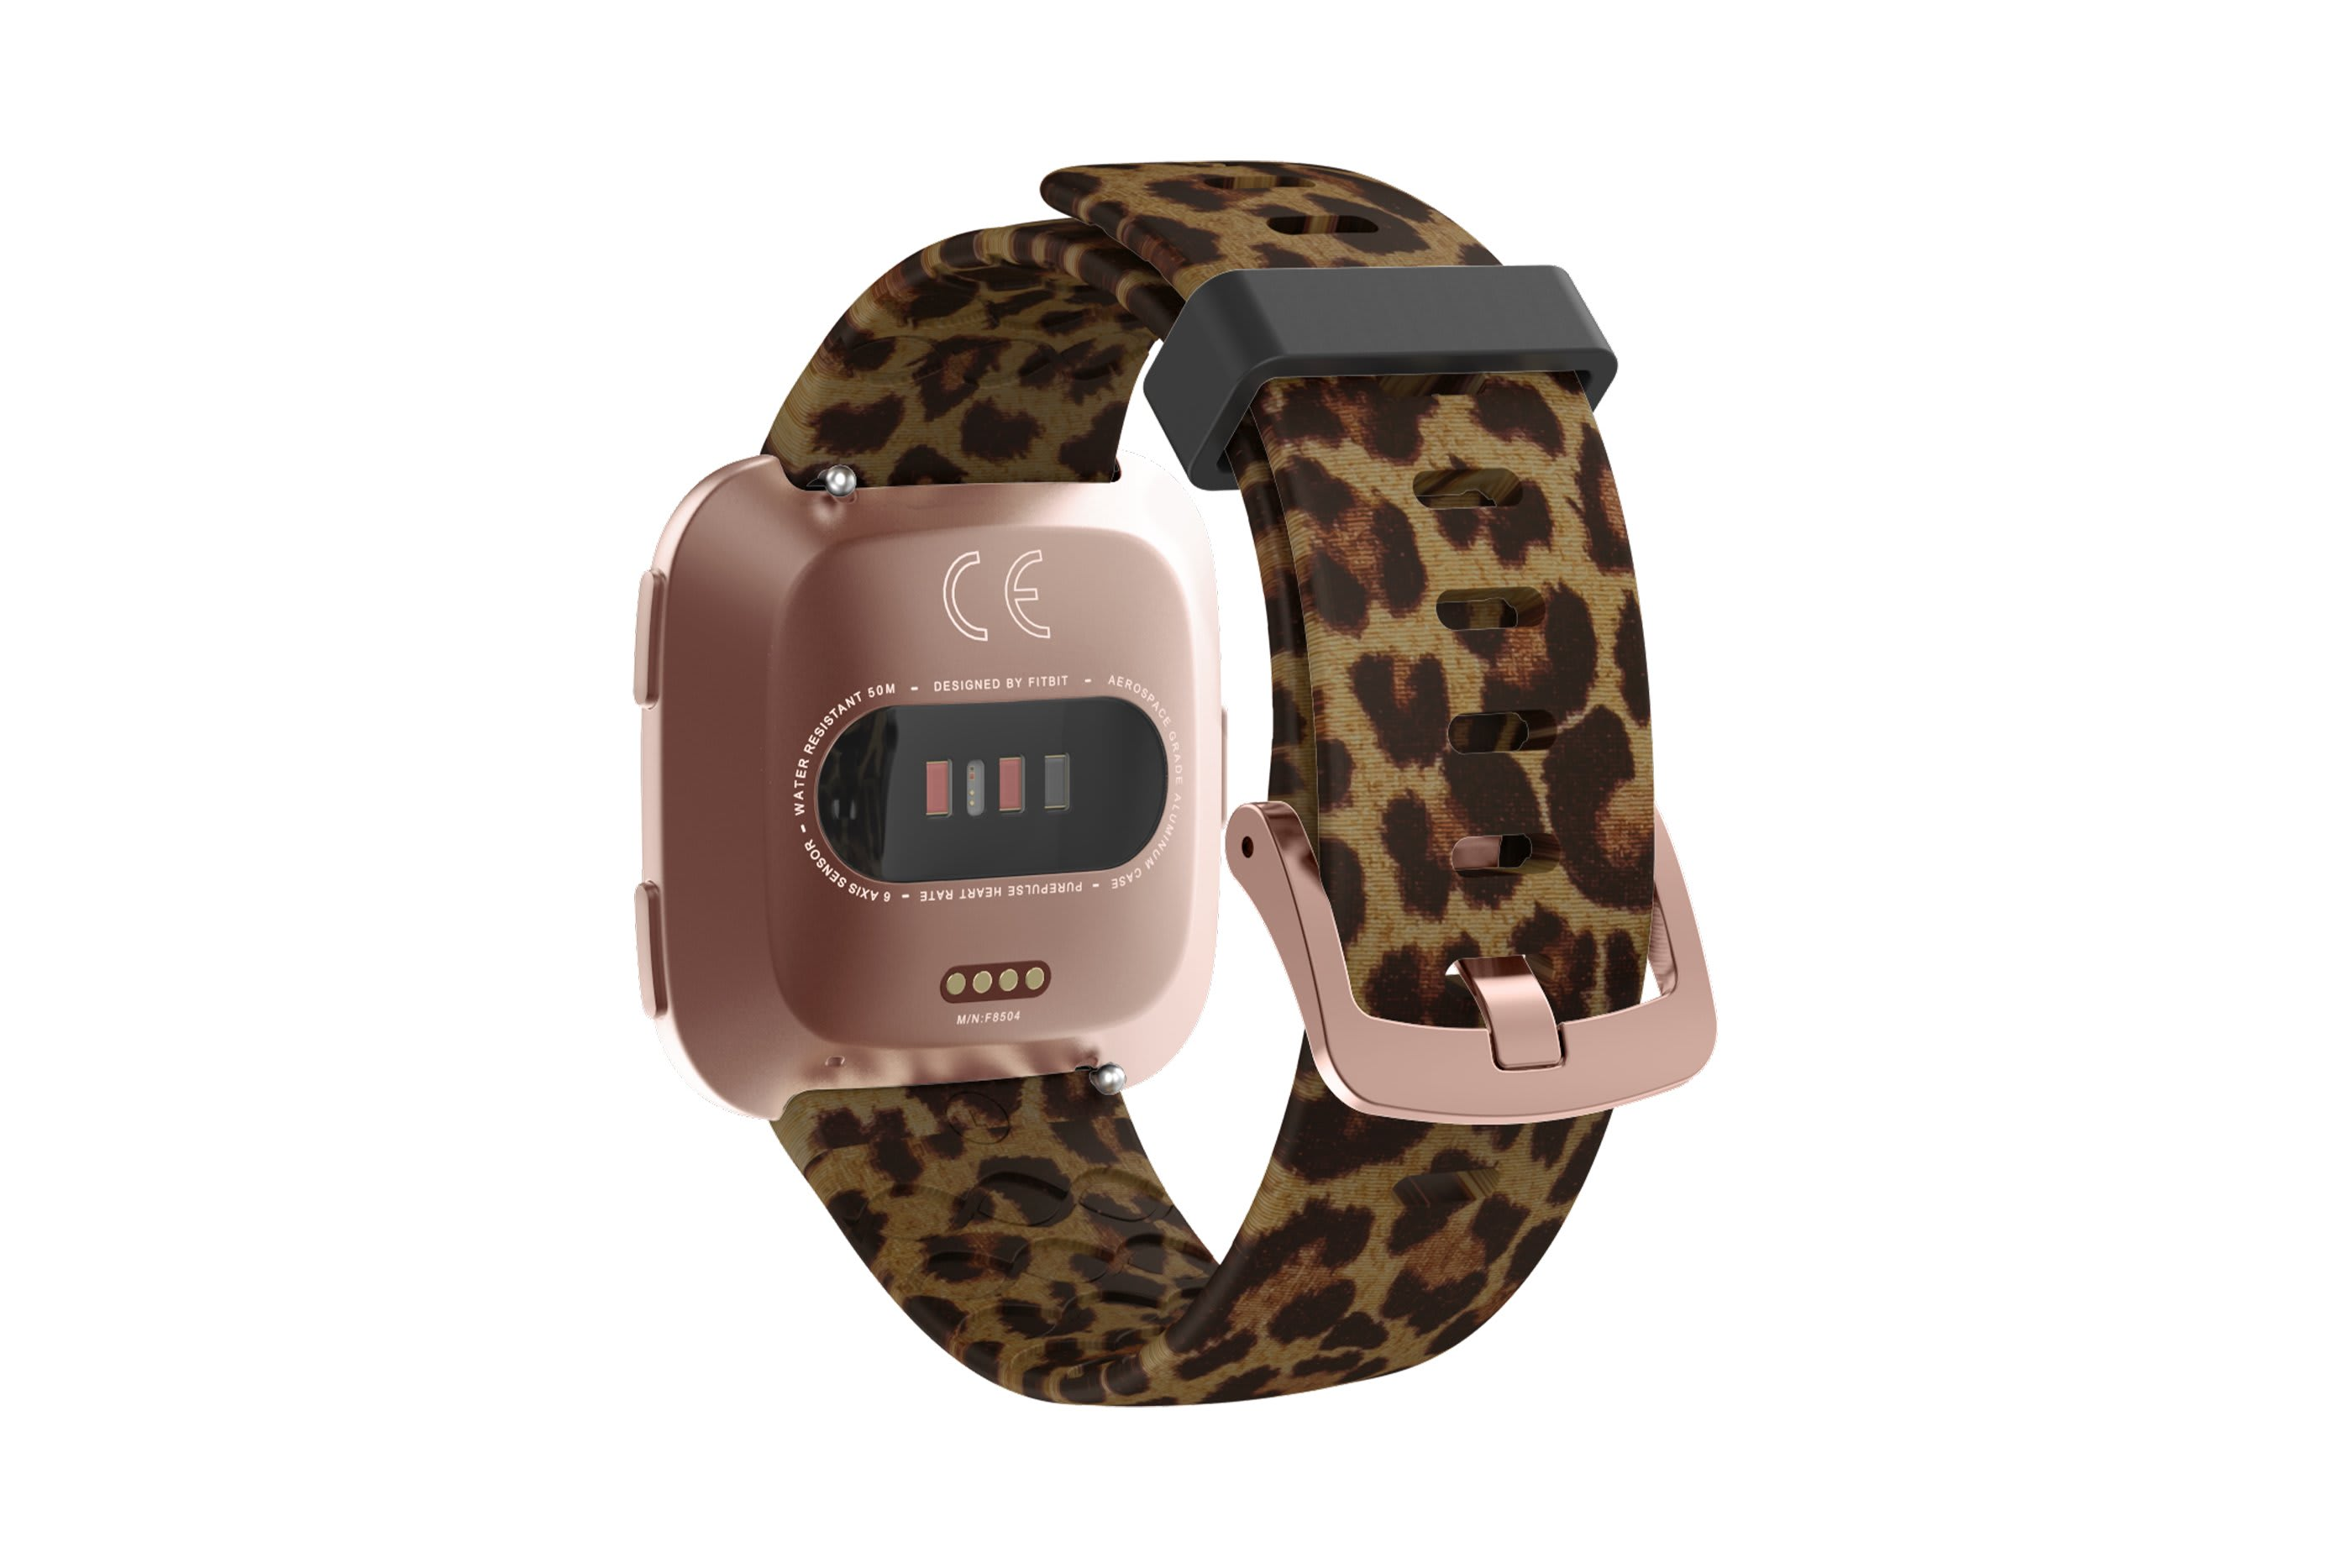 Leopard fitbit versa watch band with rose gold hardware viewed from top down